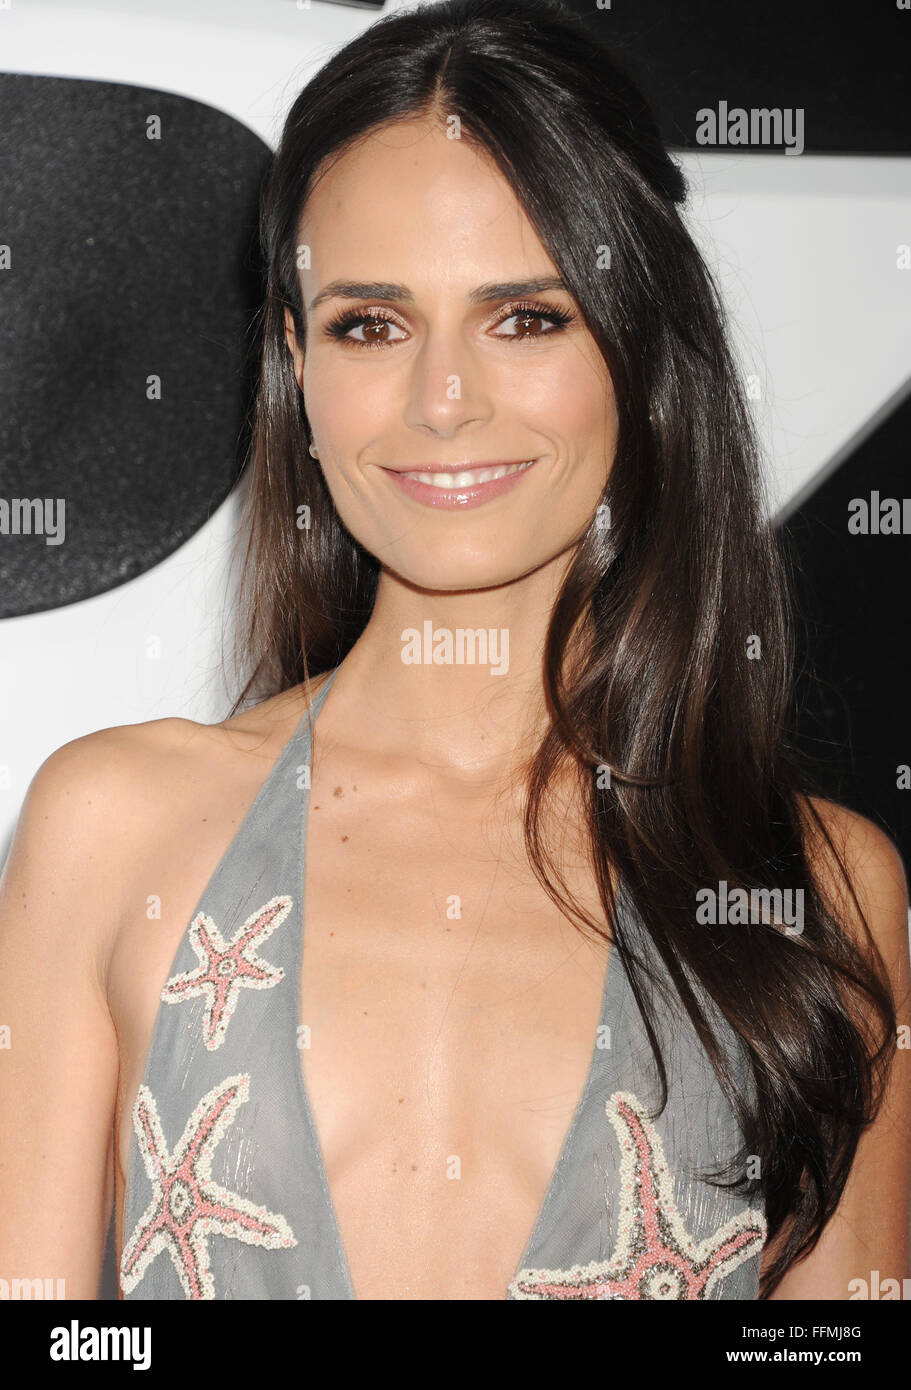 Pictures Jordana Brewster nude (25 photo), Sexy, Fappening, Boobs, in bikini 2020